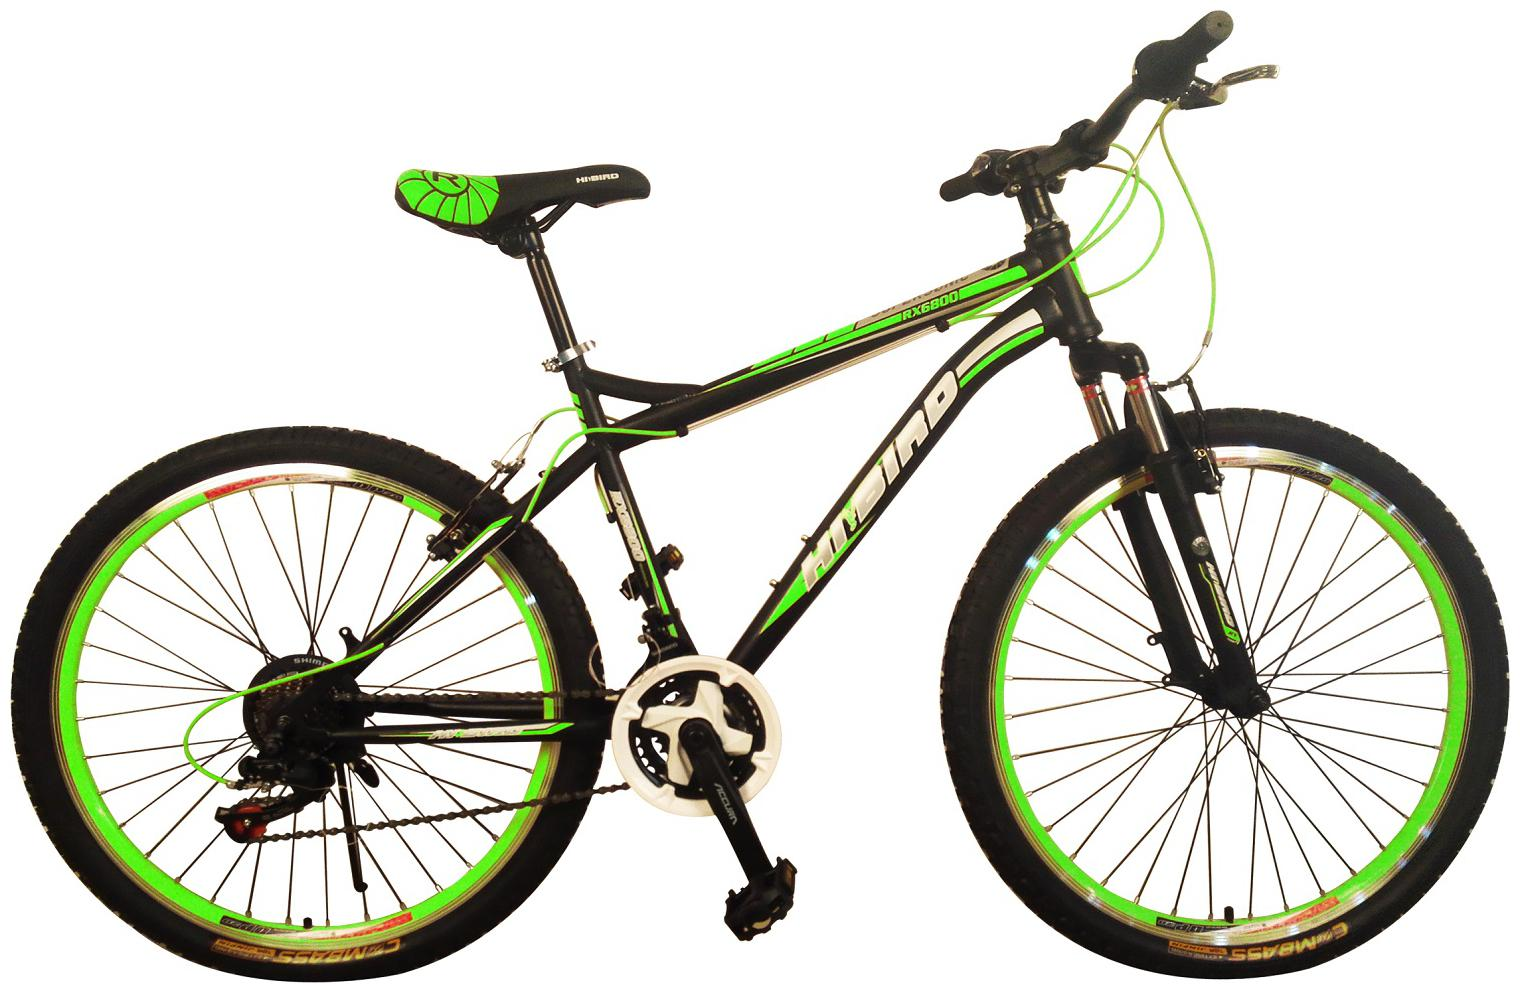 Hi Bird Supersonic 21 Speed 26 inch Green ;Black Color Cycle by Hi Bird Global Industries